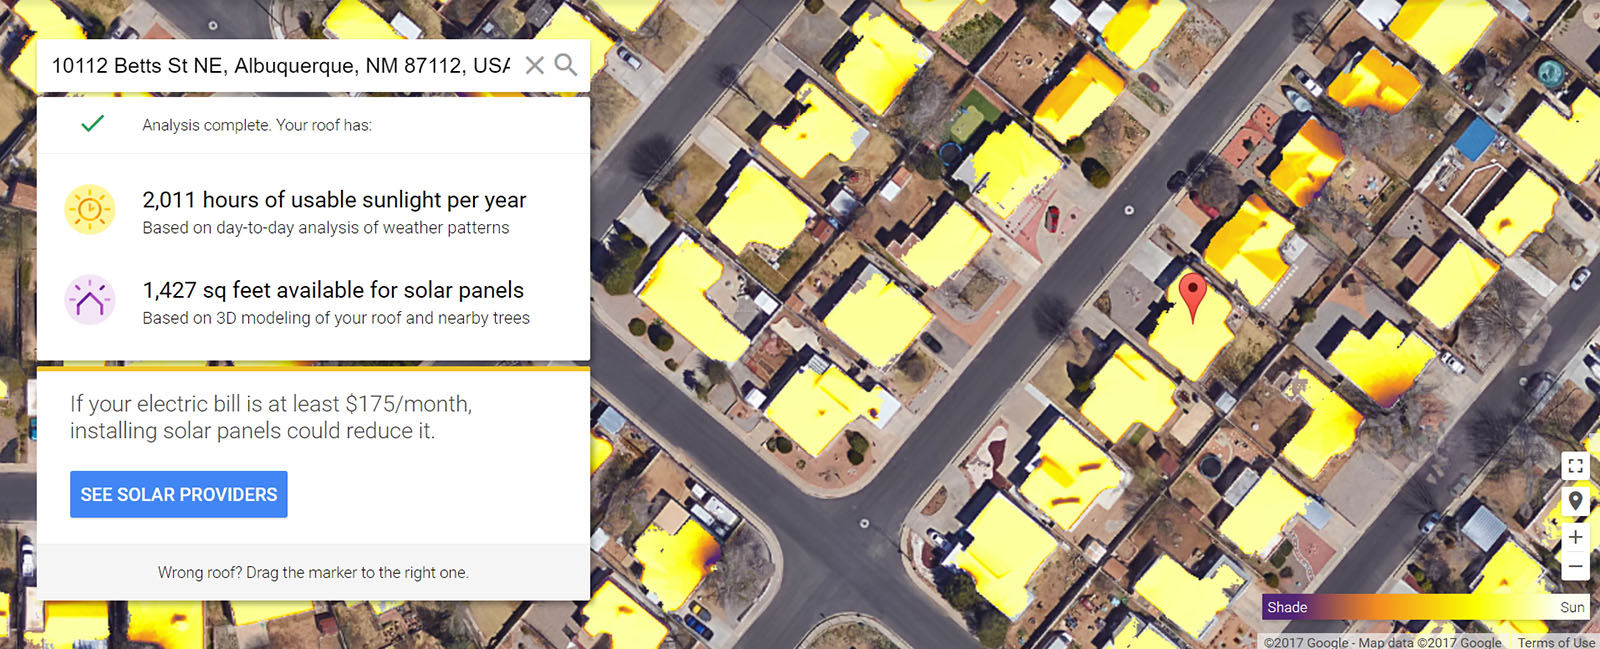 Google: 4 out of 5 US homes have solar power potential